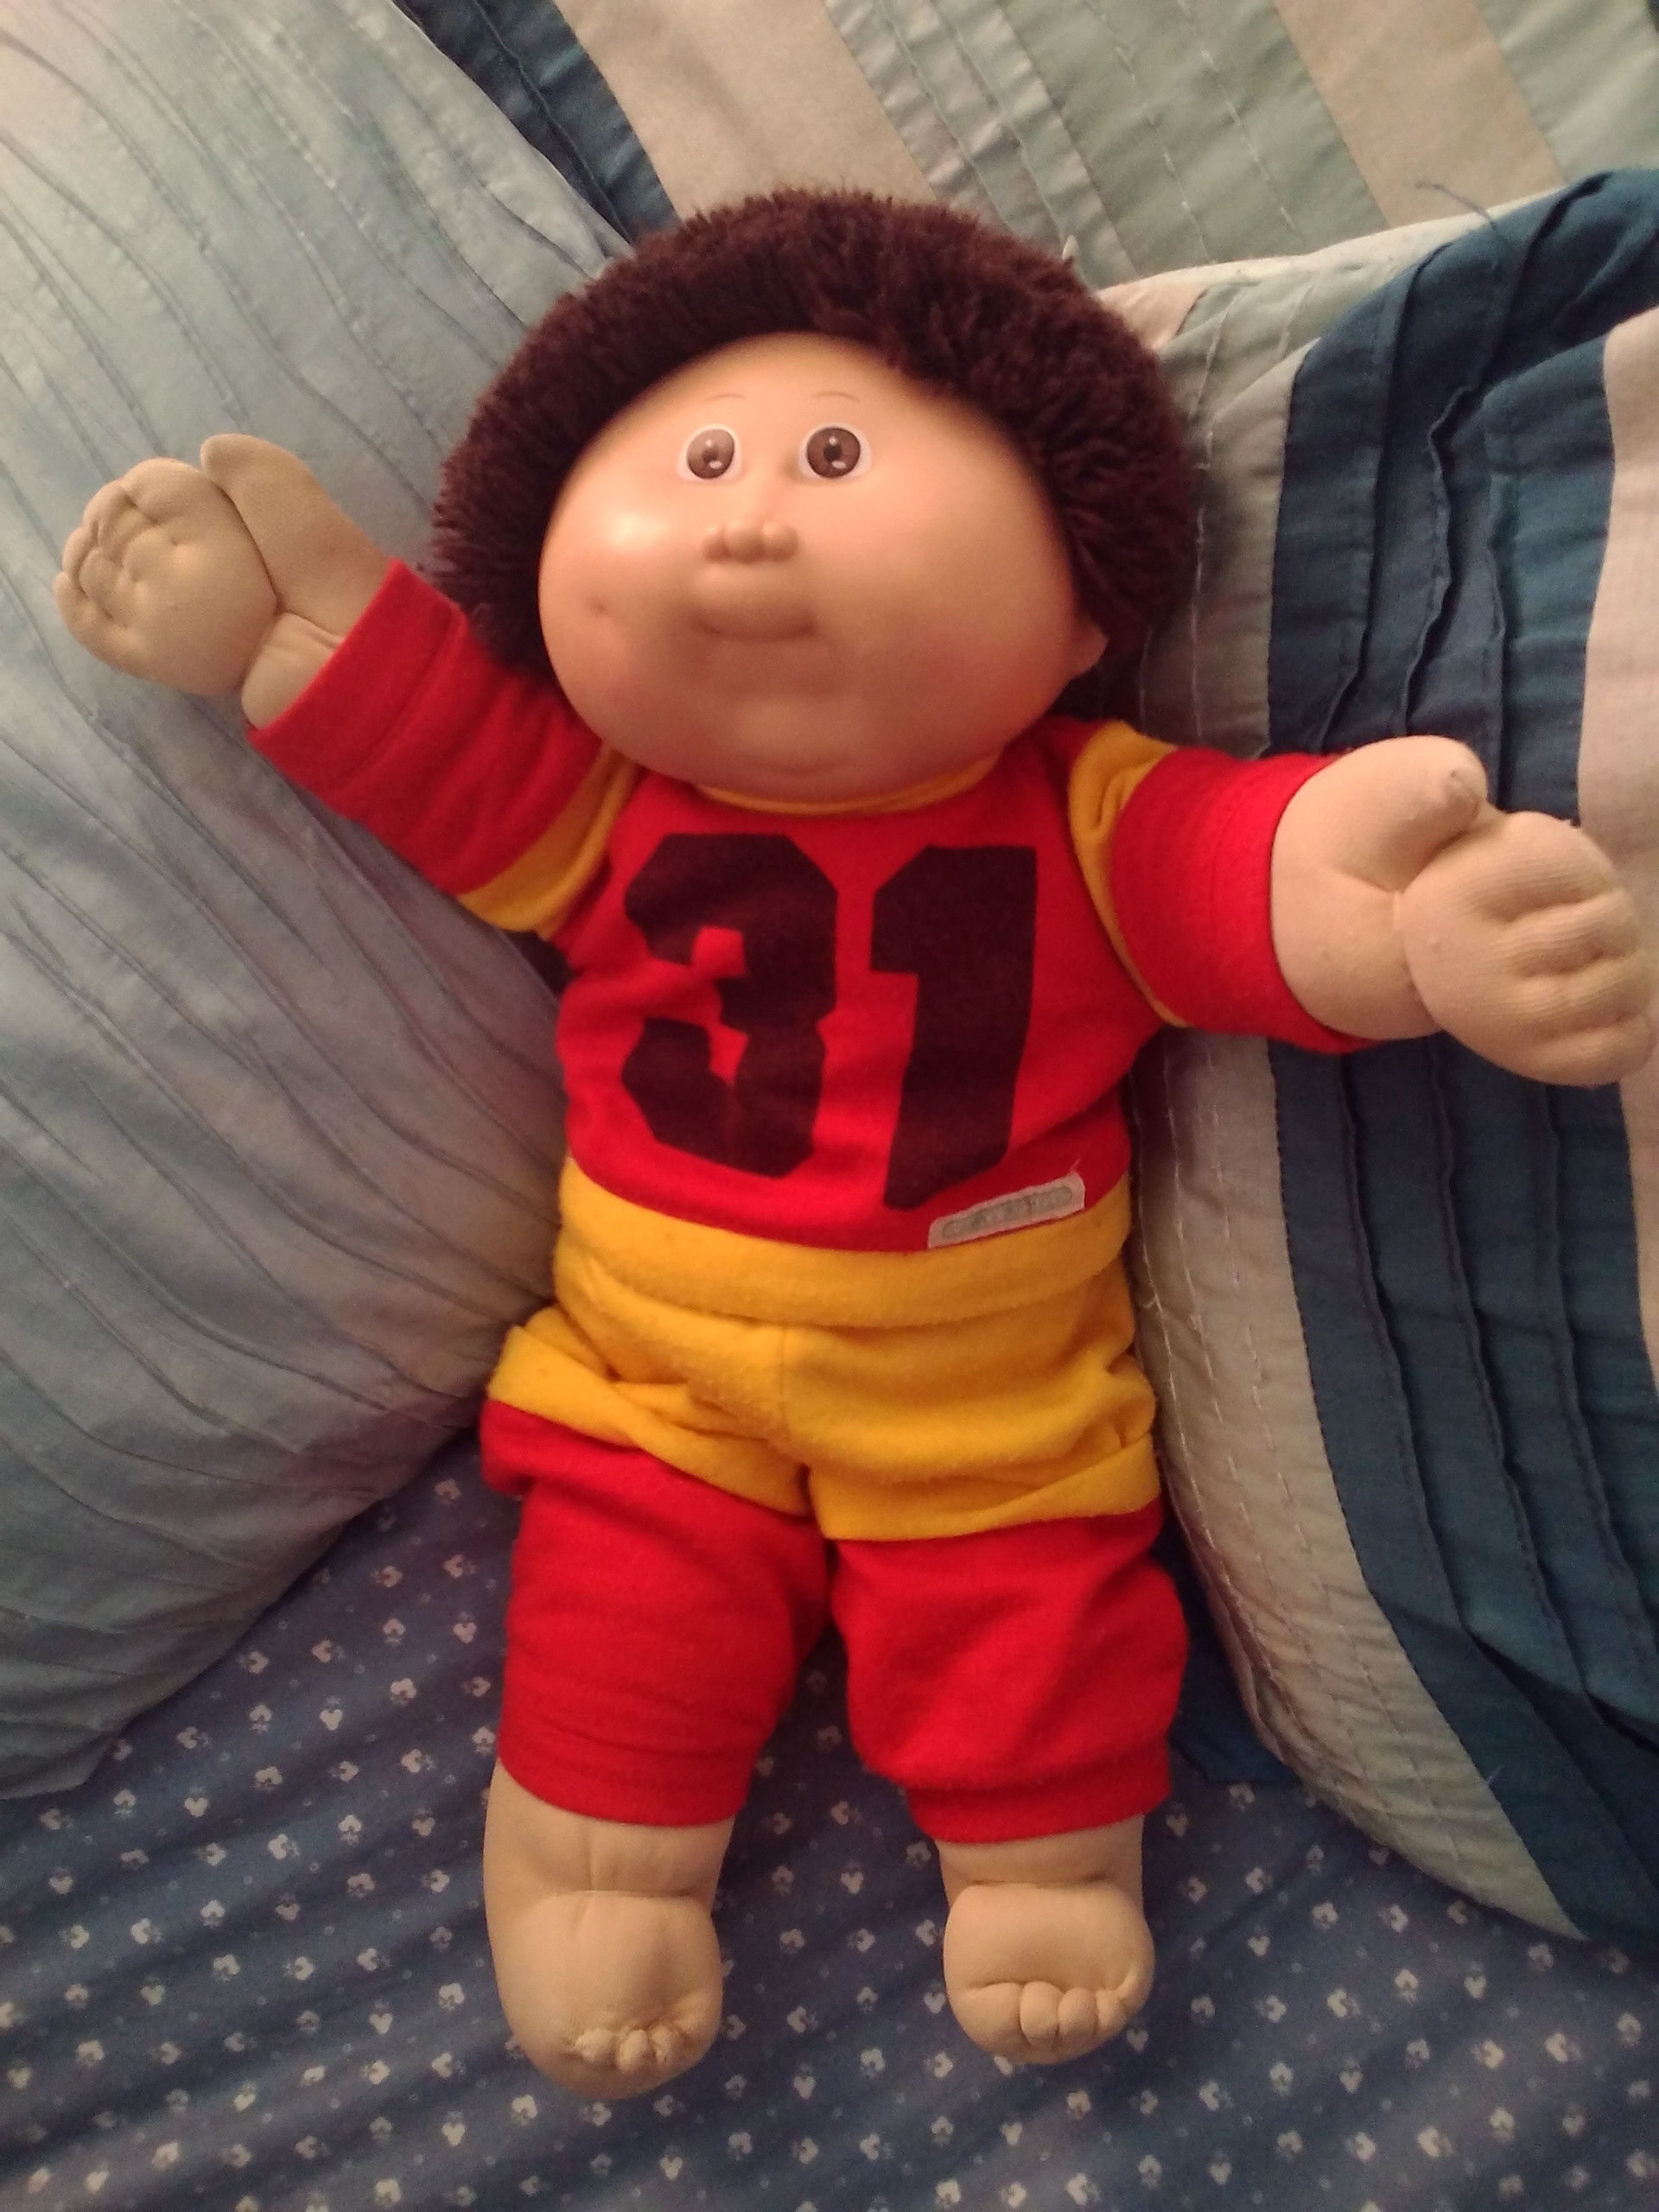 Cabbage Patch Doll Lovely Cabbage Patch Kids Of Superb 40 Models Cabbage Patch Doll